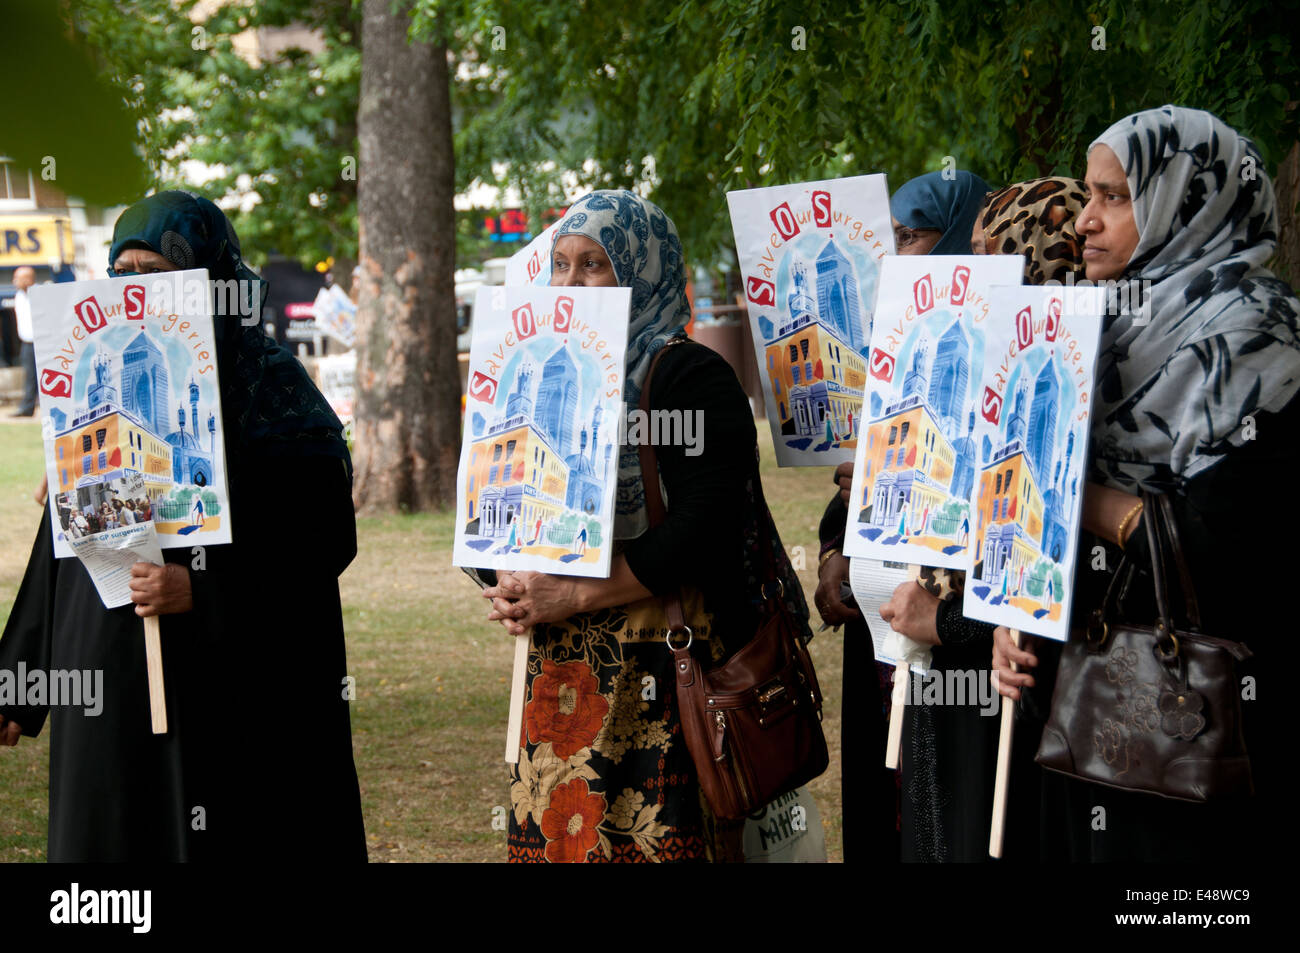 Rally against proposed cuts to National Health Service doctors' surgeries. A group of Bangladeshi women protesters - Stock Image